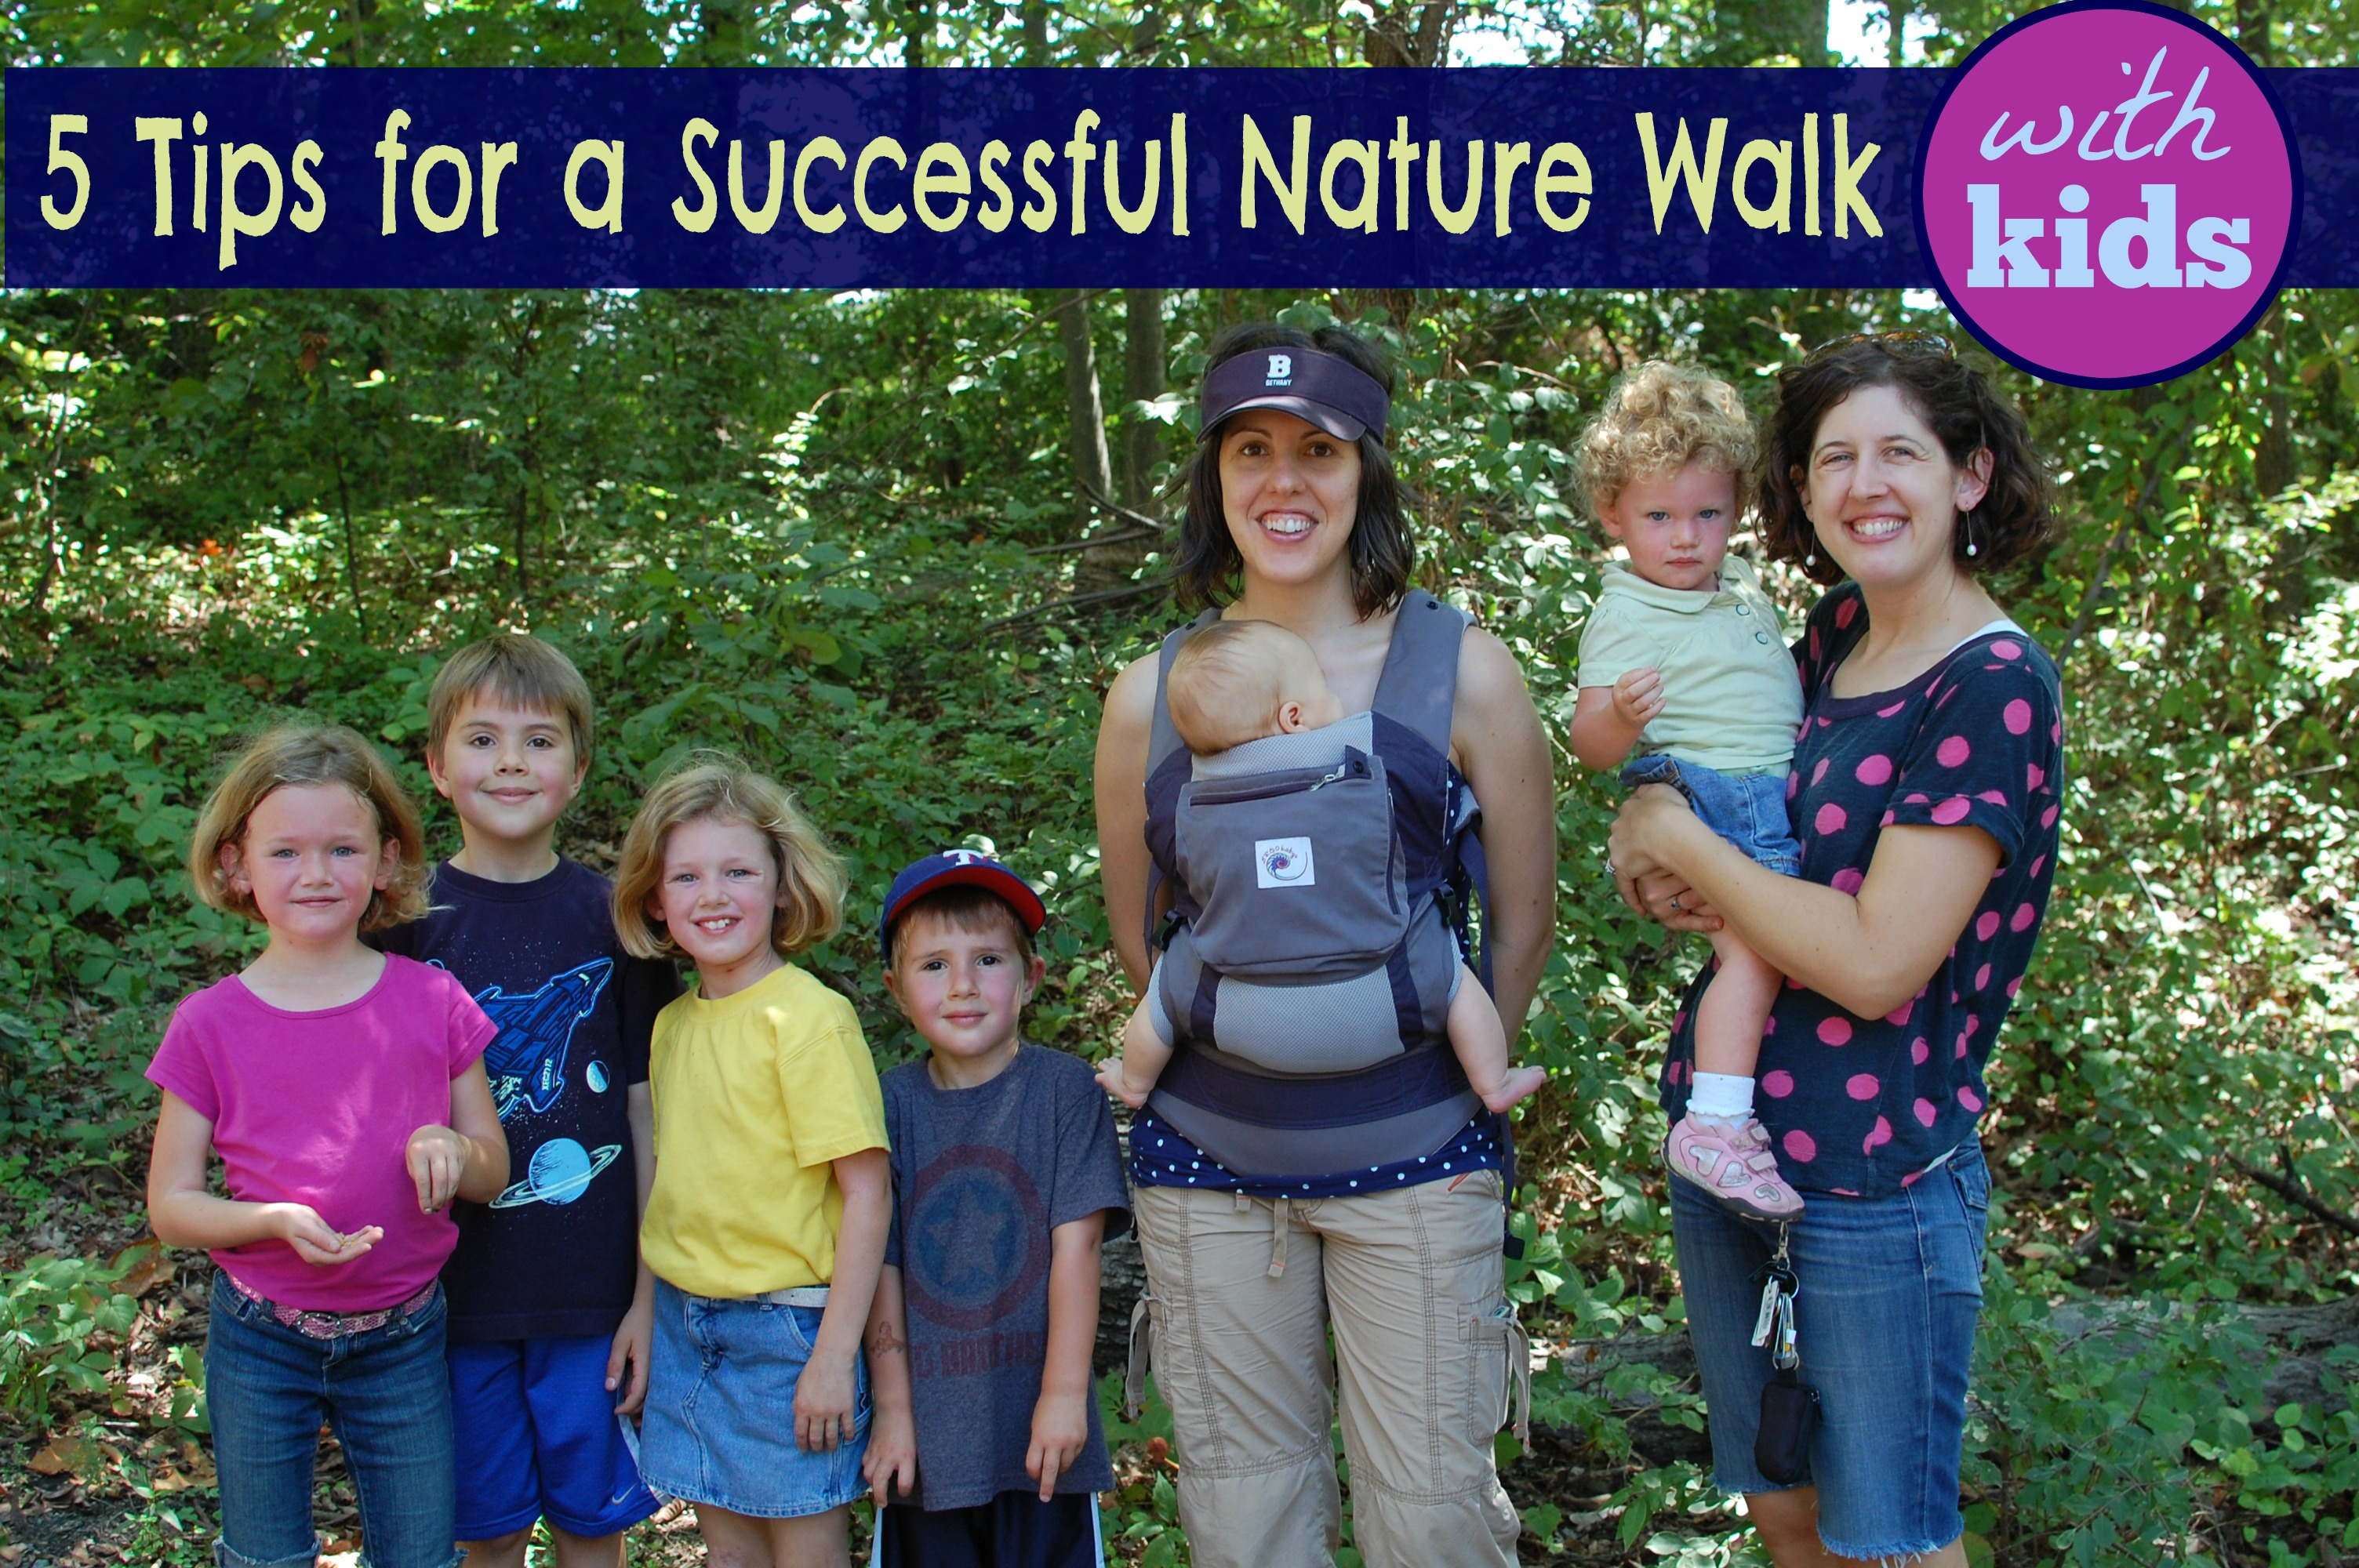 5 Tips for a Successful Nature Walk with Kids {#1 Find a Buddy}